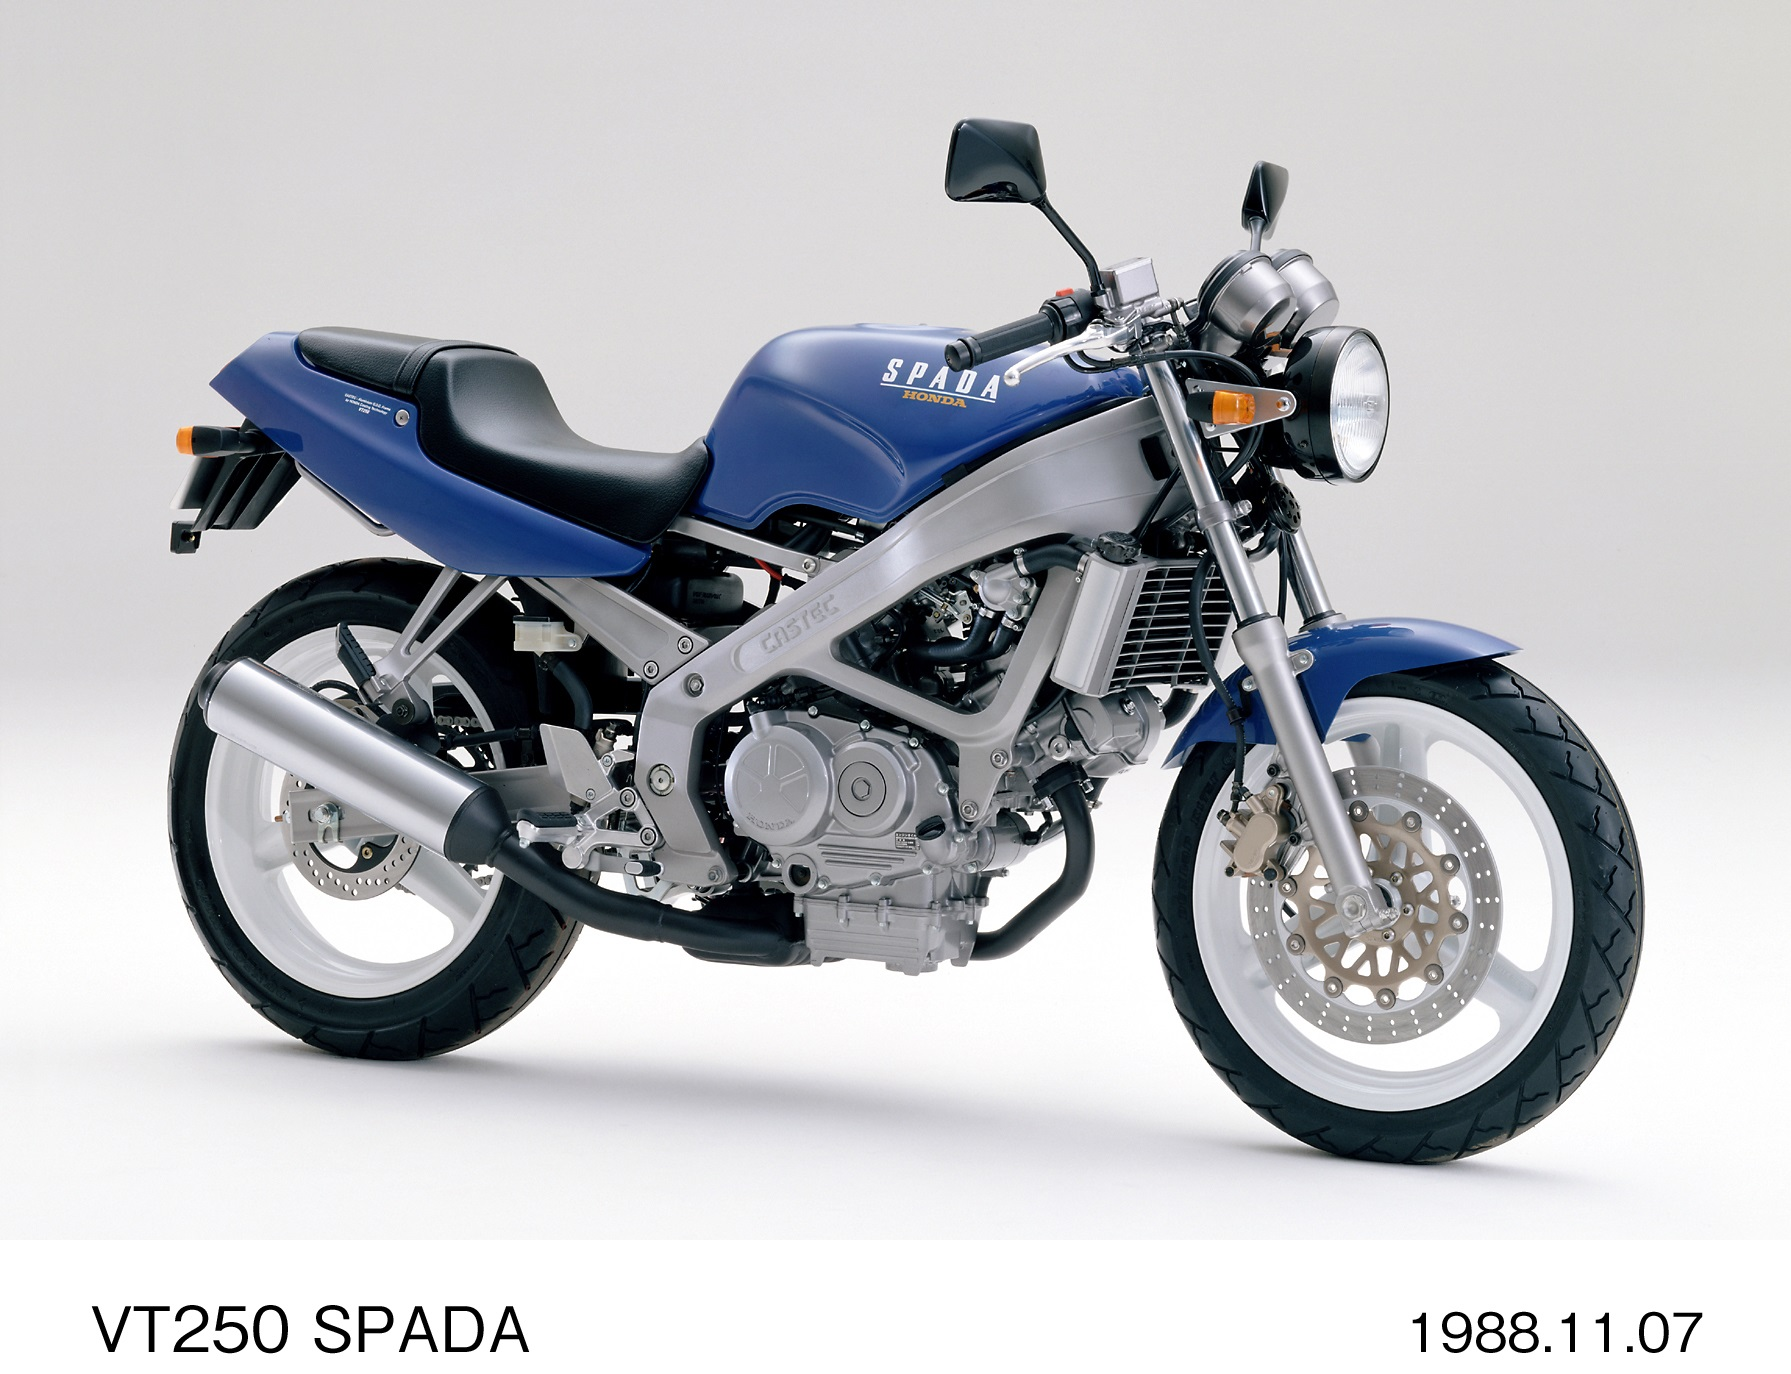 Top 10 interesting Hondas you might not know about